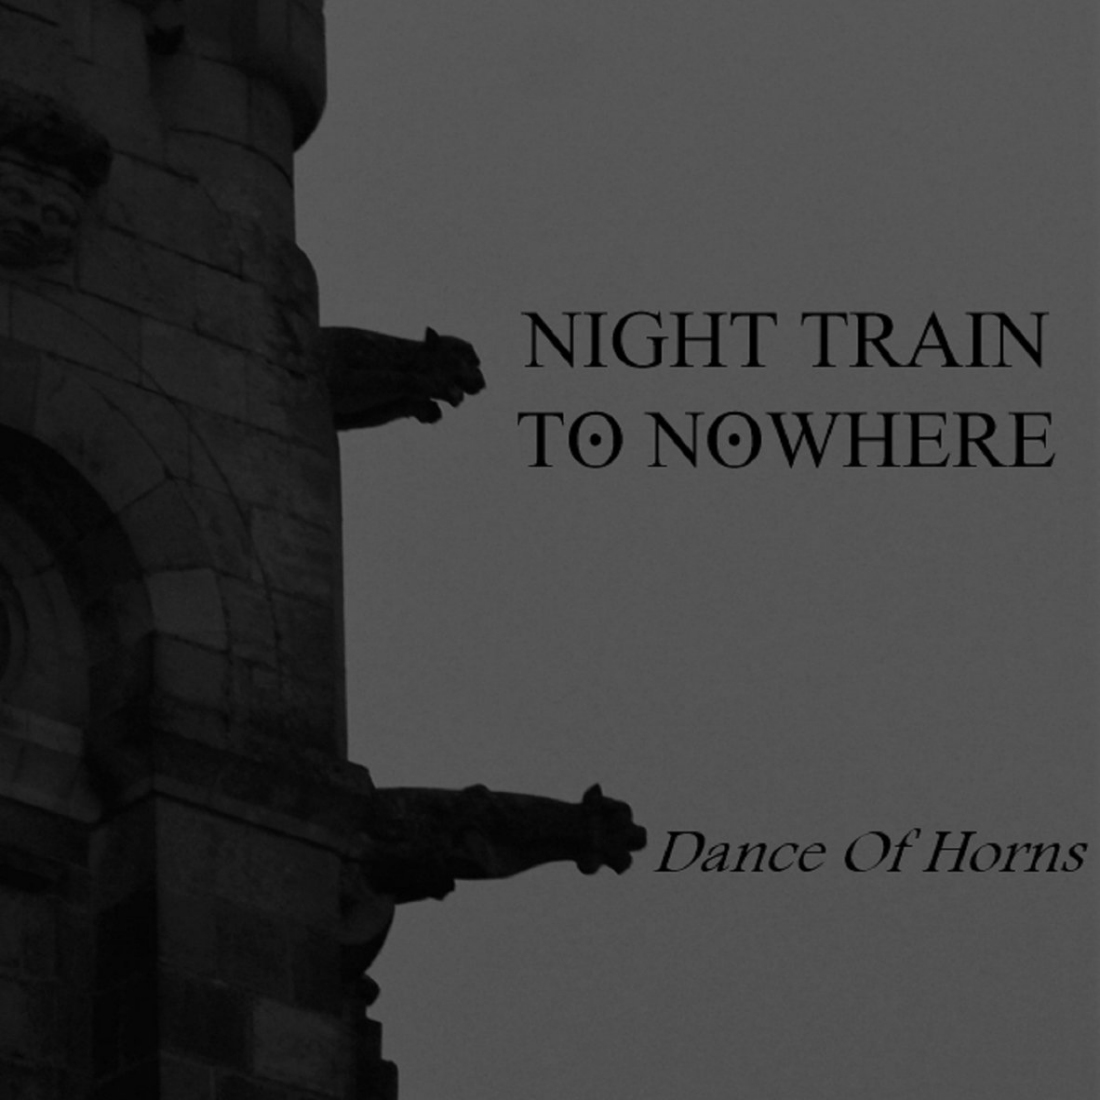 Night Train To Nowhere, Dance Of Horns